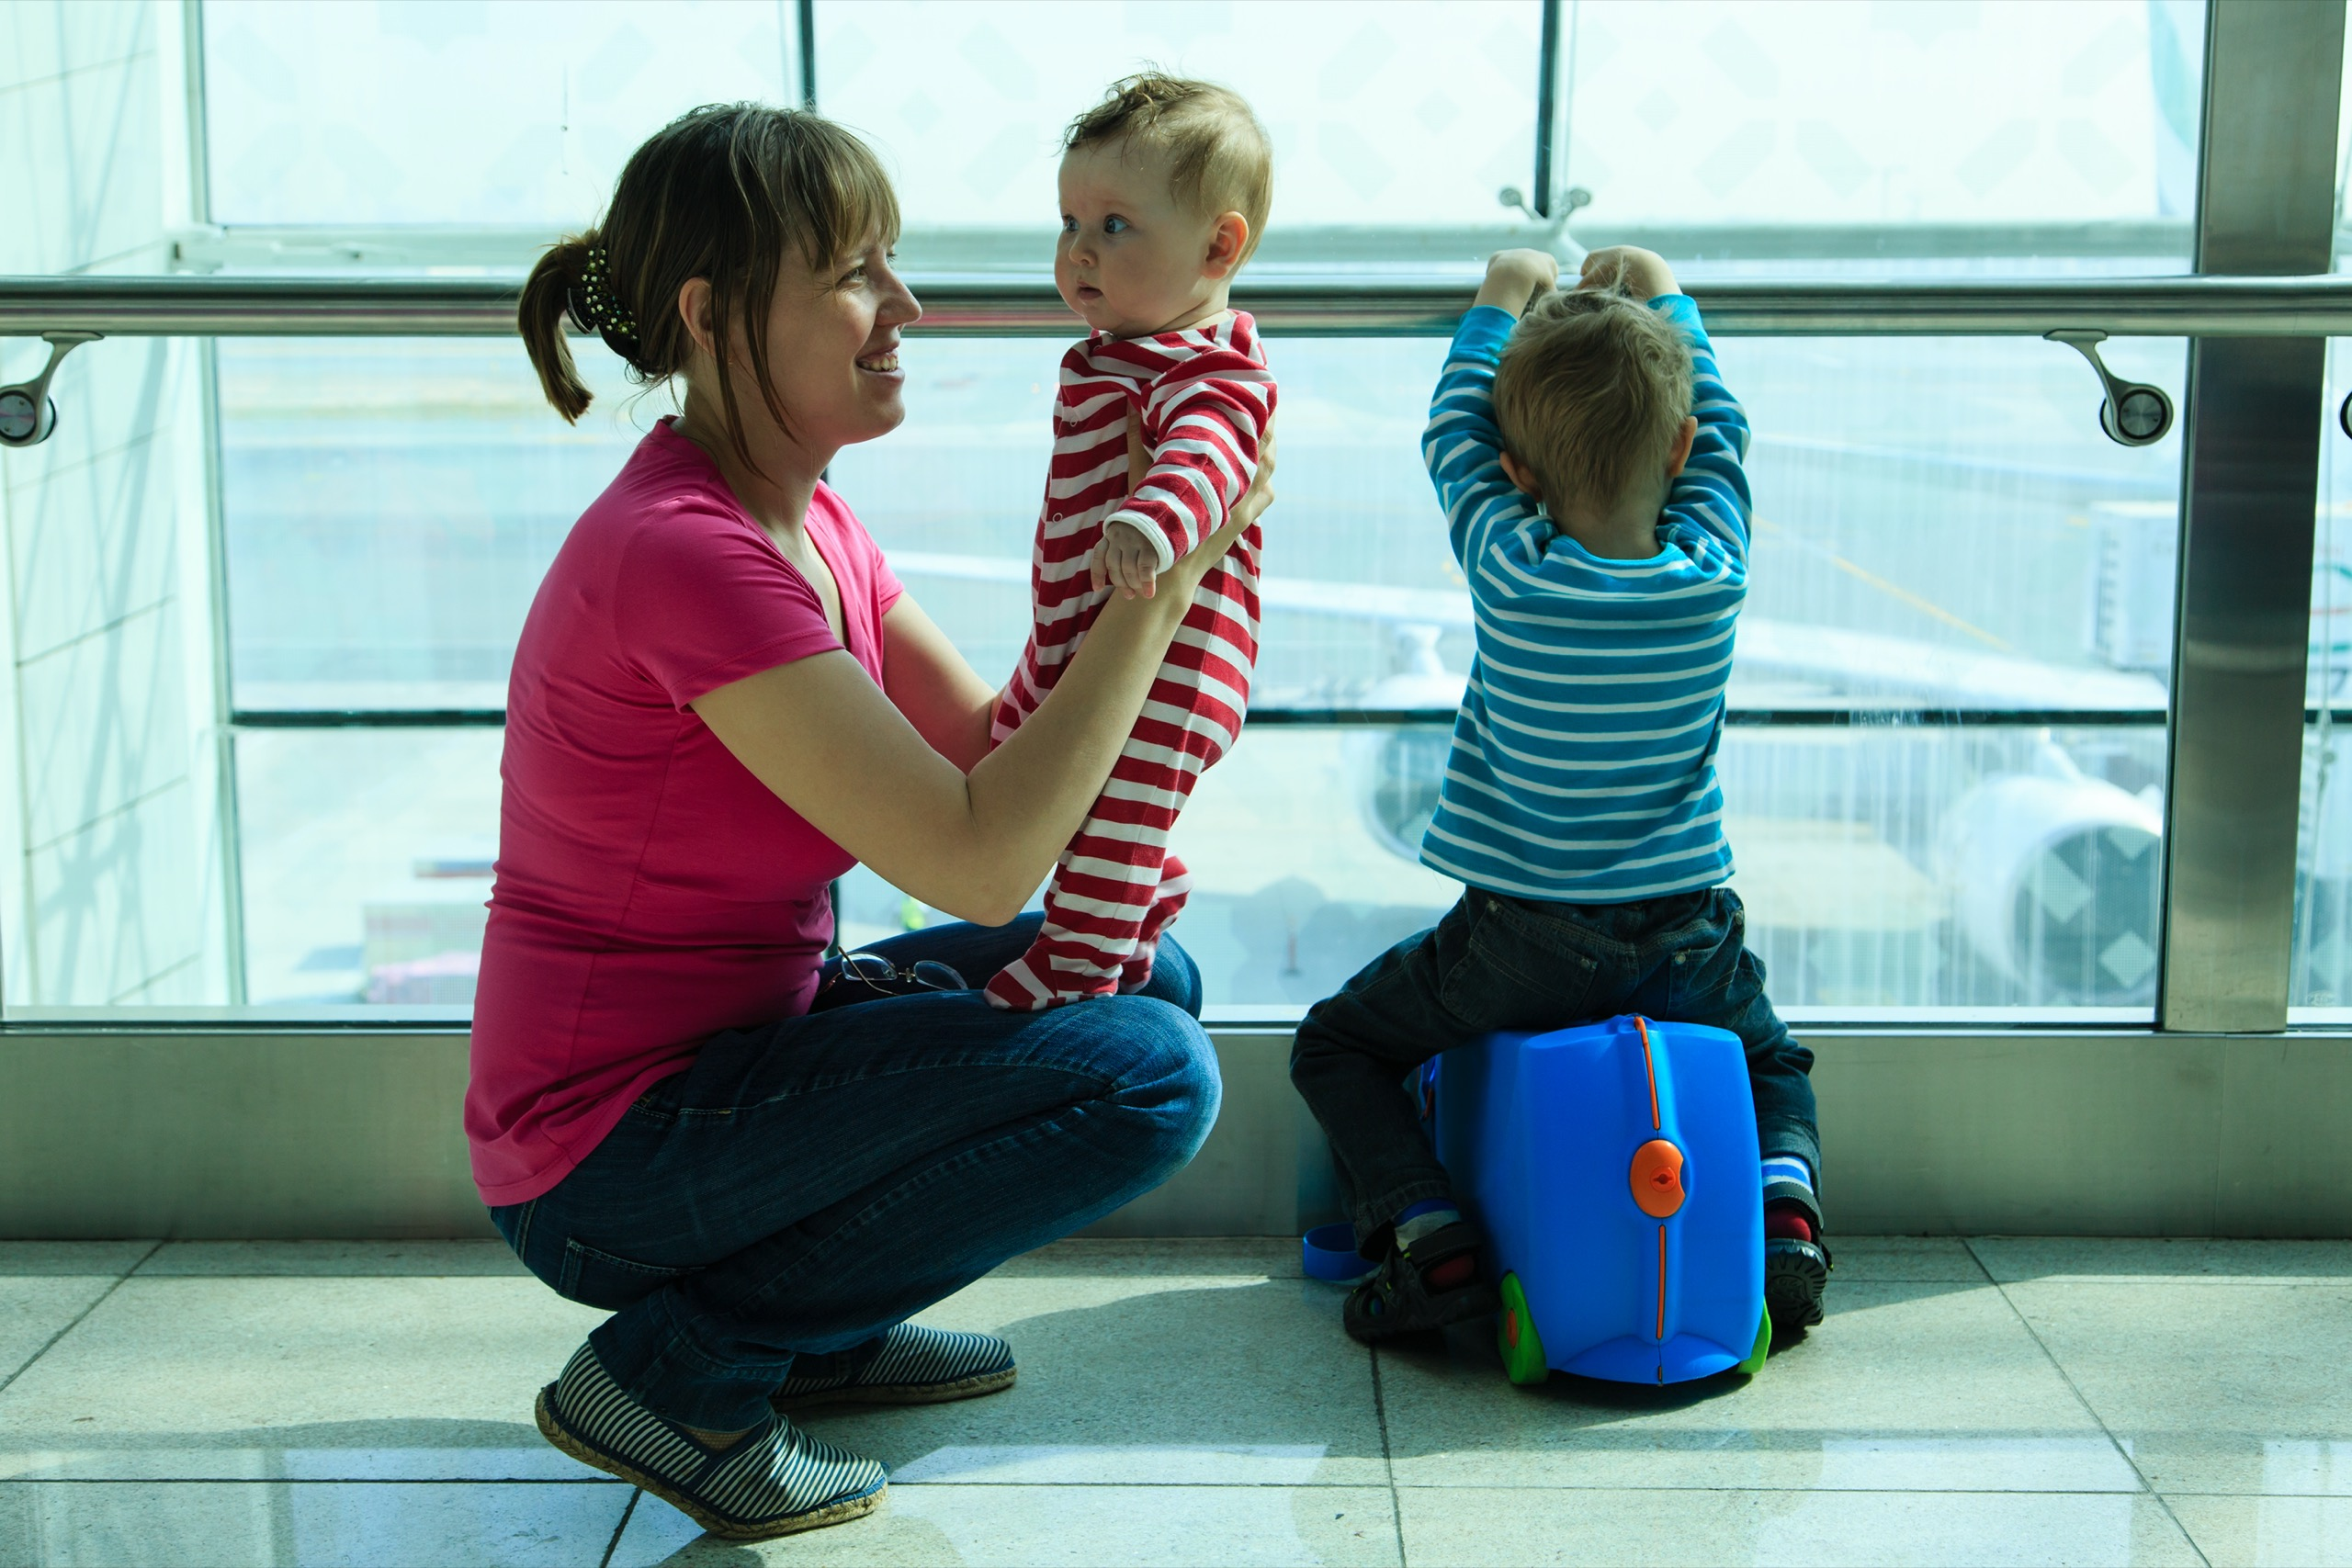 A mother holds a baby in both arms as her other child rests on a suitcase at an airport terminal. The mother is smiling and the older brother is looking out of the window at airplanes on the runway.